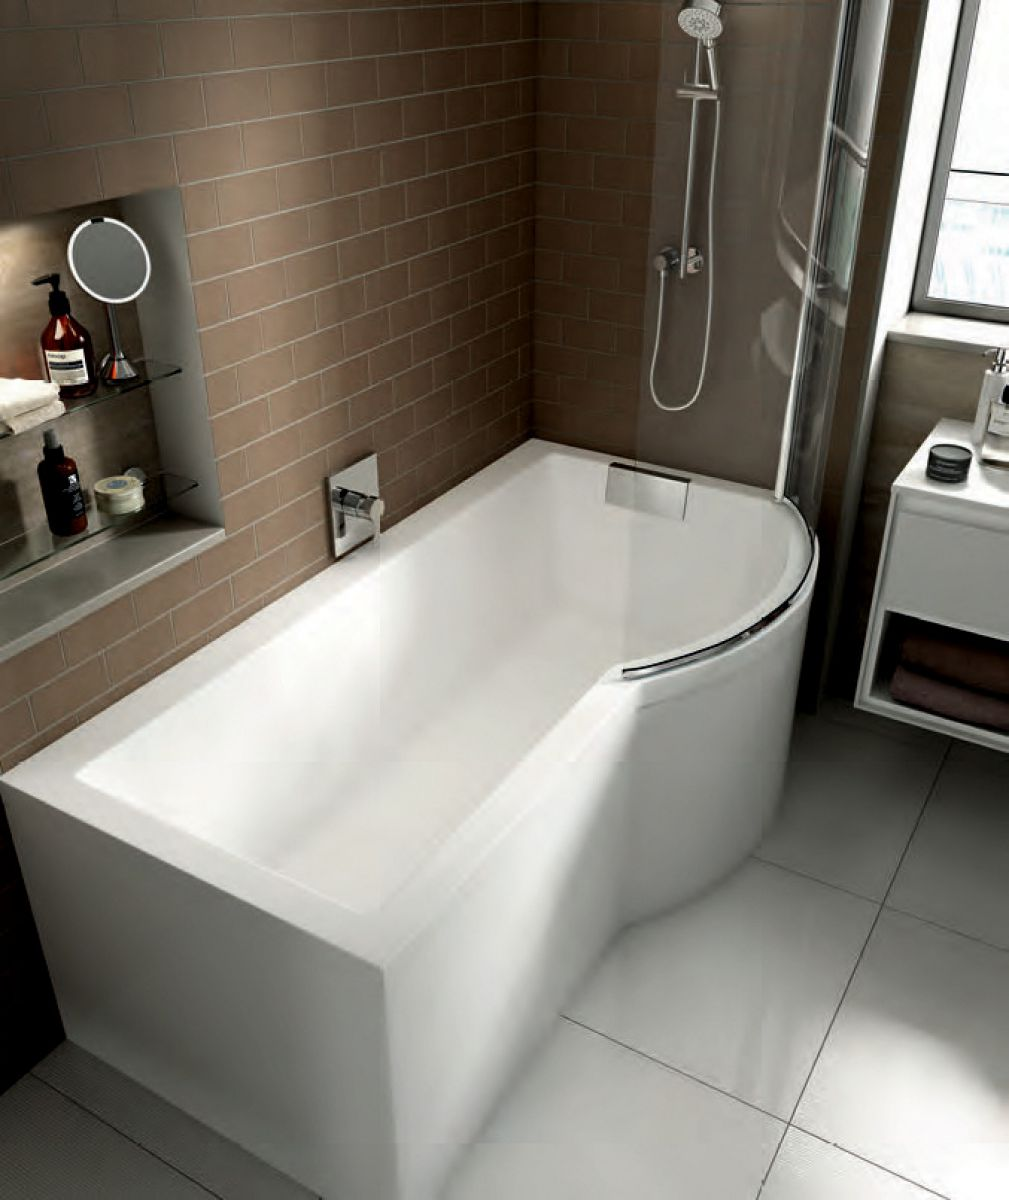 Bathroom And Showers Direct: Carron Celsius Shower Bath With Screen & Bath Panel